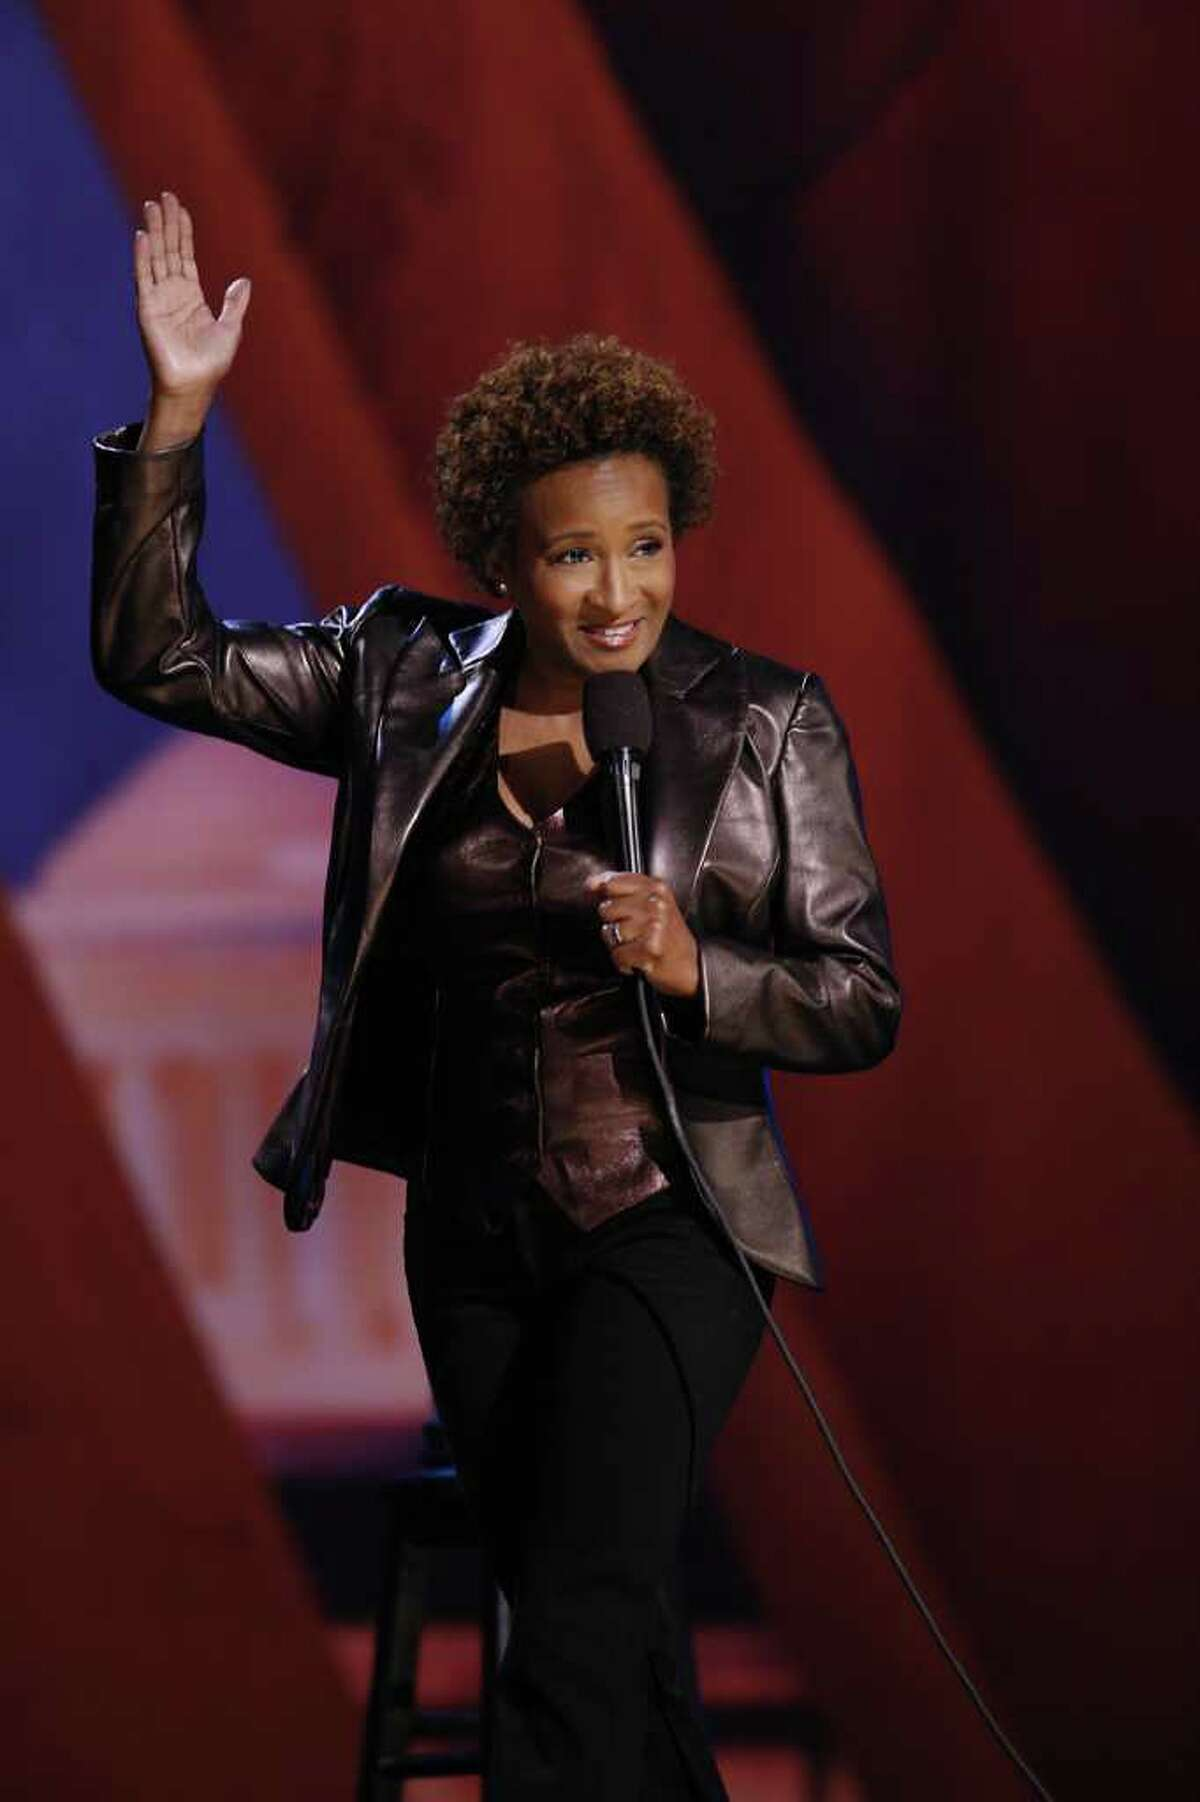 Emmy-nominated comedian Wanda Sykes. When: Saturday, Oct. 17, 8 p.m. Where: The Palace Theatre, 19 Clinton Ave., Albany. For tickets and more info, visit the website.